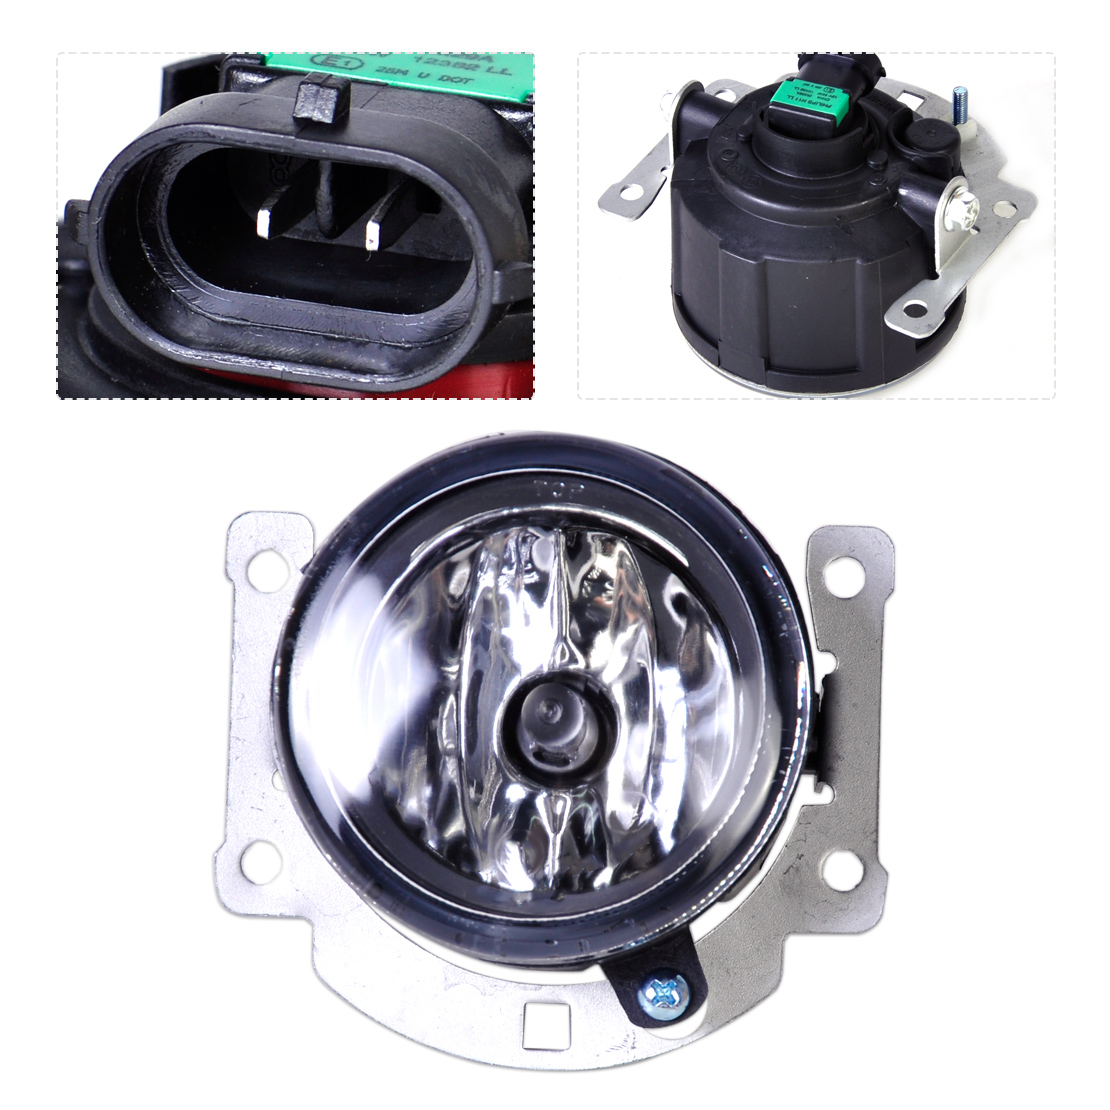 DWCX 8321A467 SL870-1 1pc Left = Right Side Front Fog lamp Light Fit for Mitsubishi ASX Outlander Sport / RVR small micro beads polishing lathe cutting car beads machine mini diy woodworking turning lathe c00108